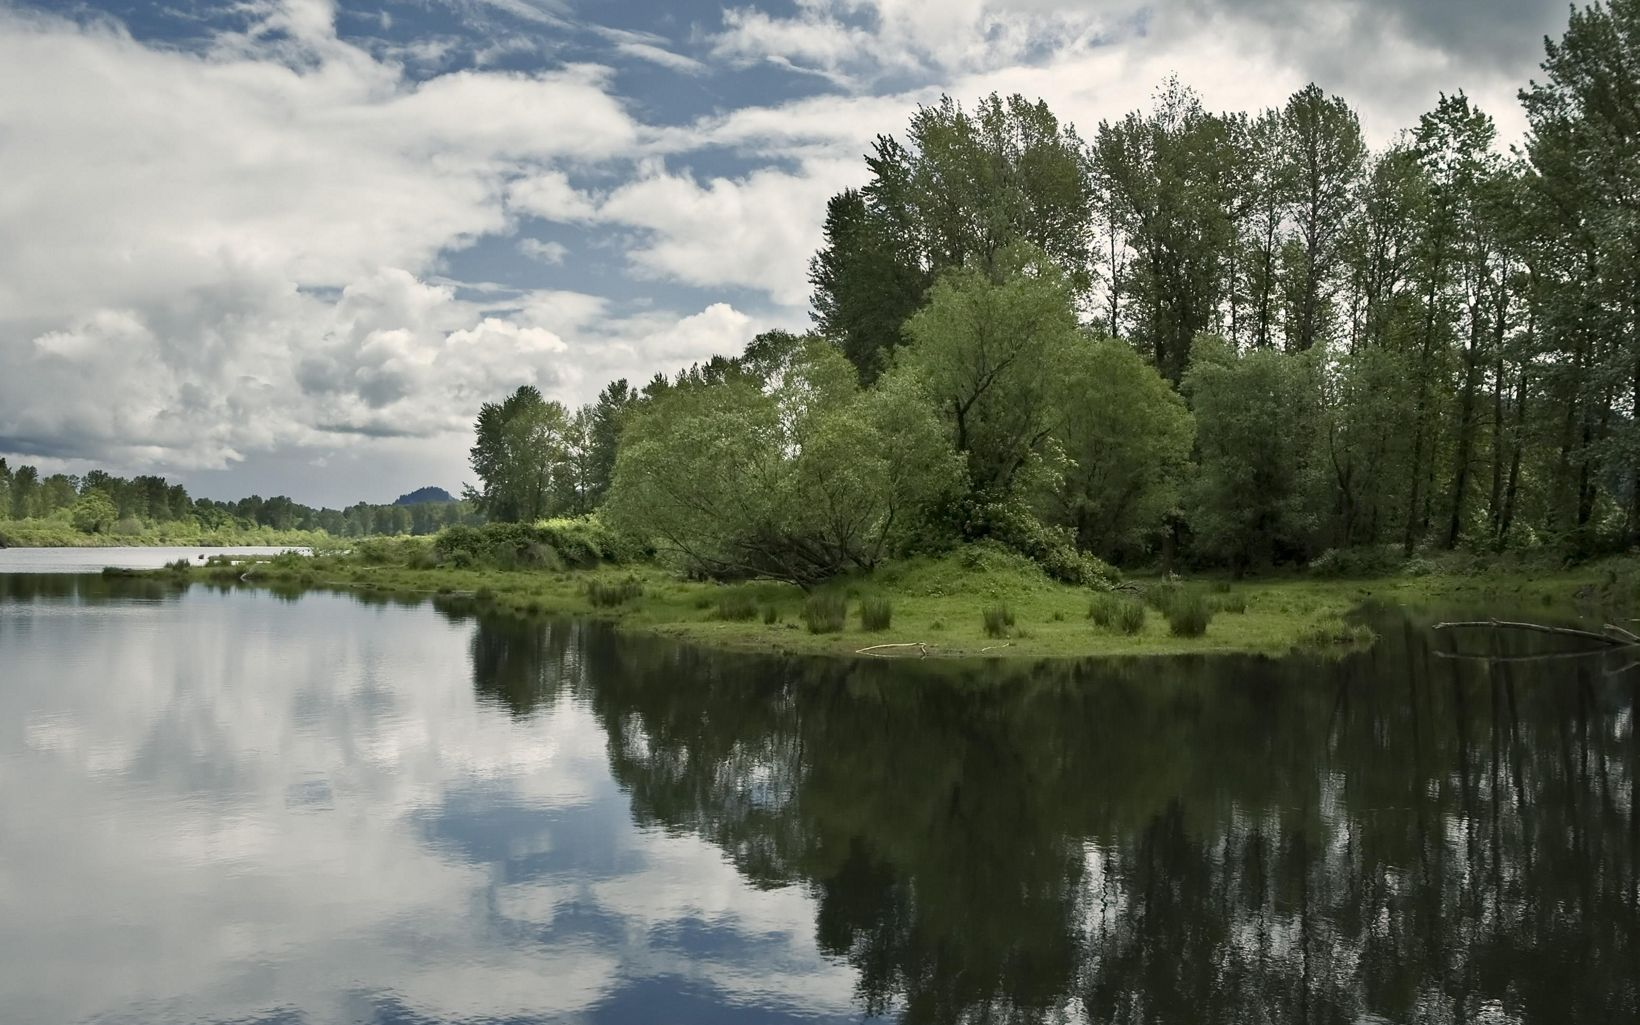 With extensive habitats increasingly endangered in Oregon's Willamette Valley, the Willamette Confluence project includes six miles of river corridor, floodplain forest, wetlands, upland oak woodlands and native prairie.